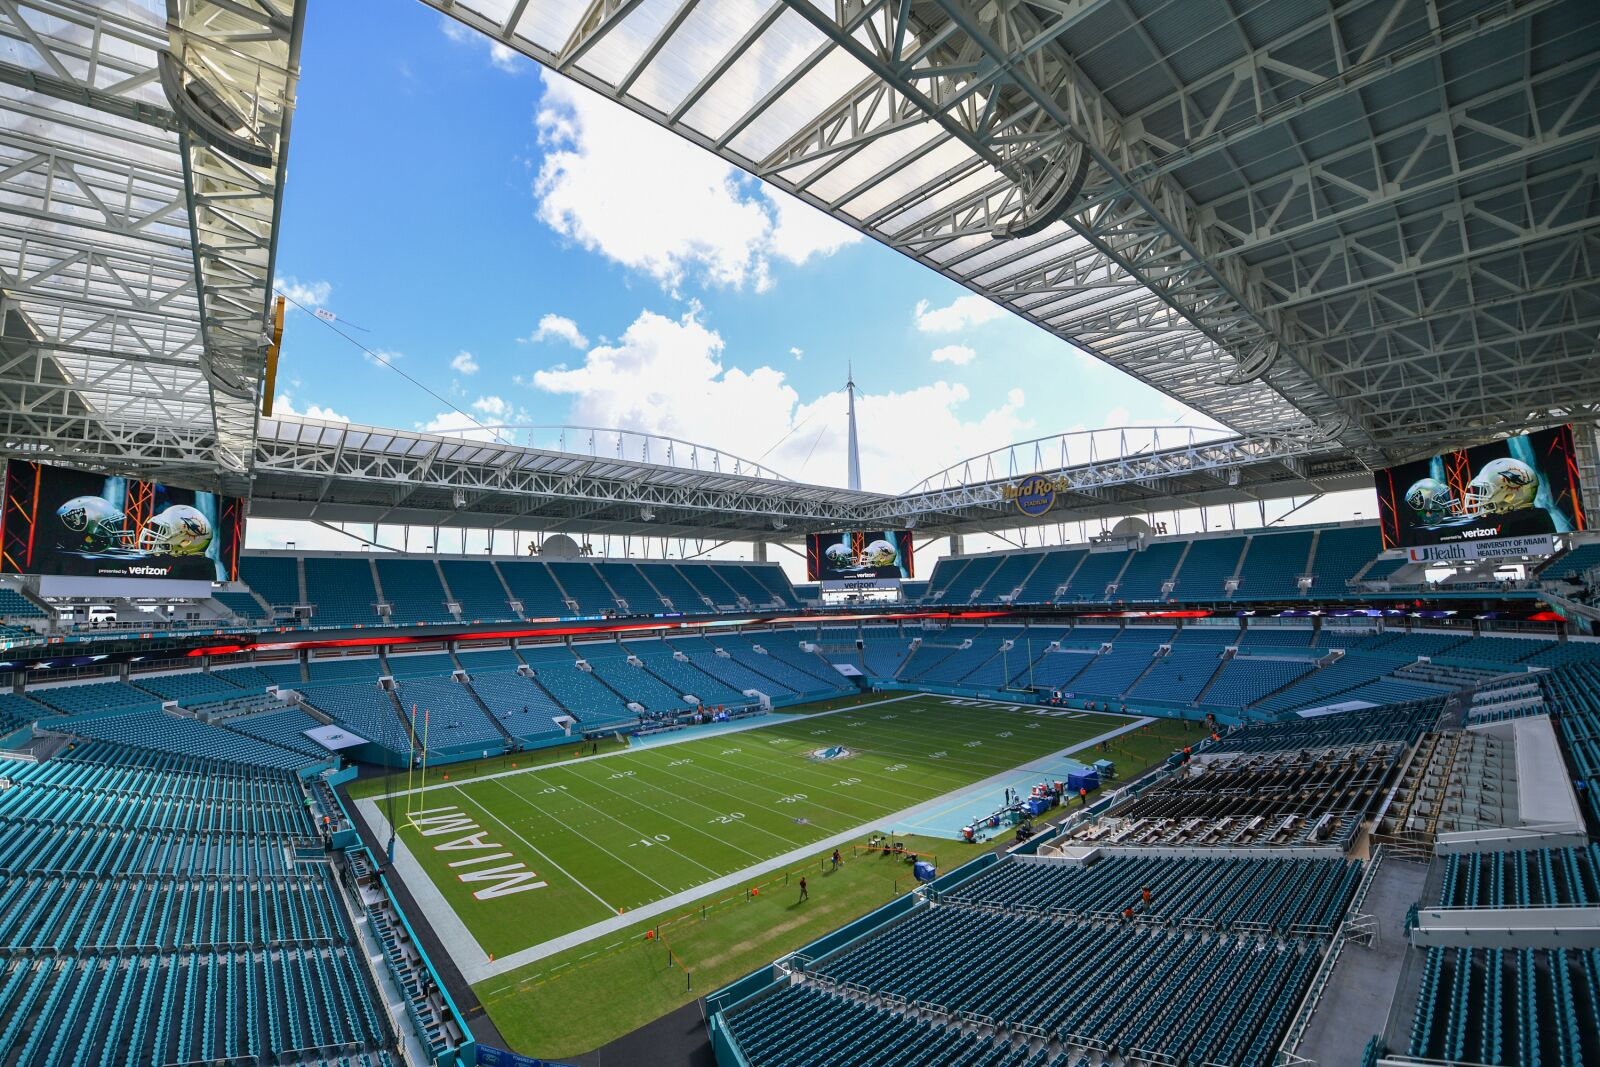 Final injury report for Miami Dolphins vs. New England Patriots